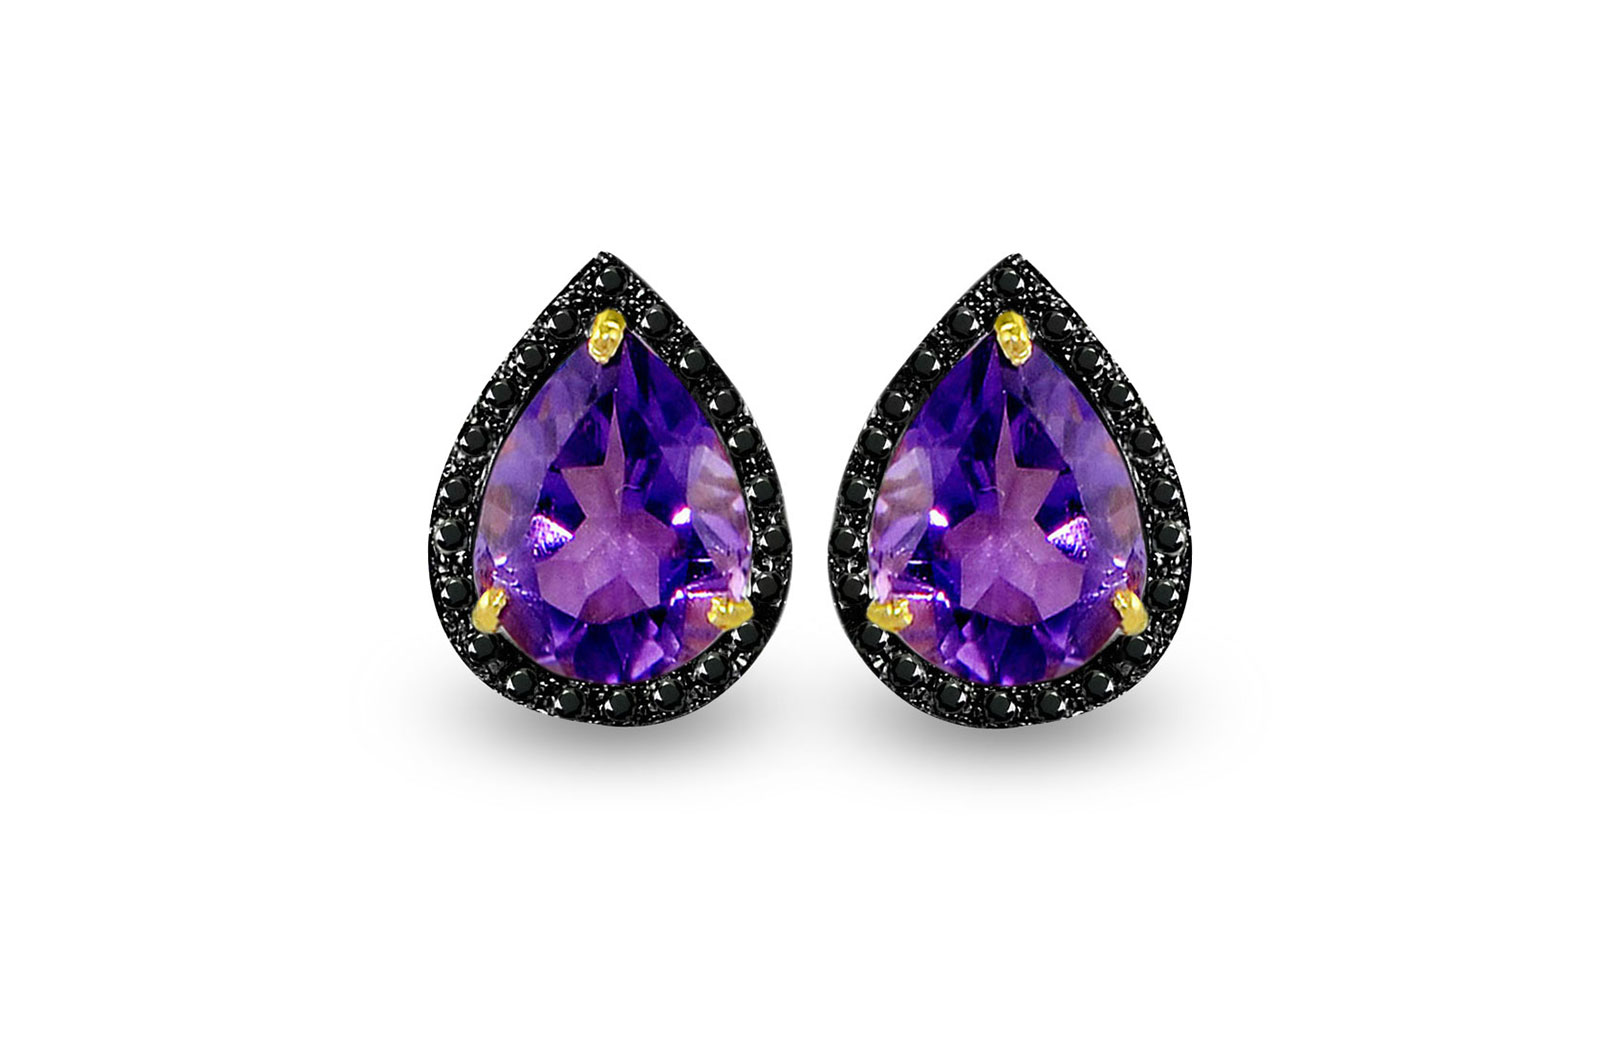 Vera Perla 18K Gold 0.24ct Black Diamonds, Amethyst Earrings